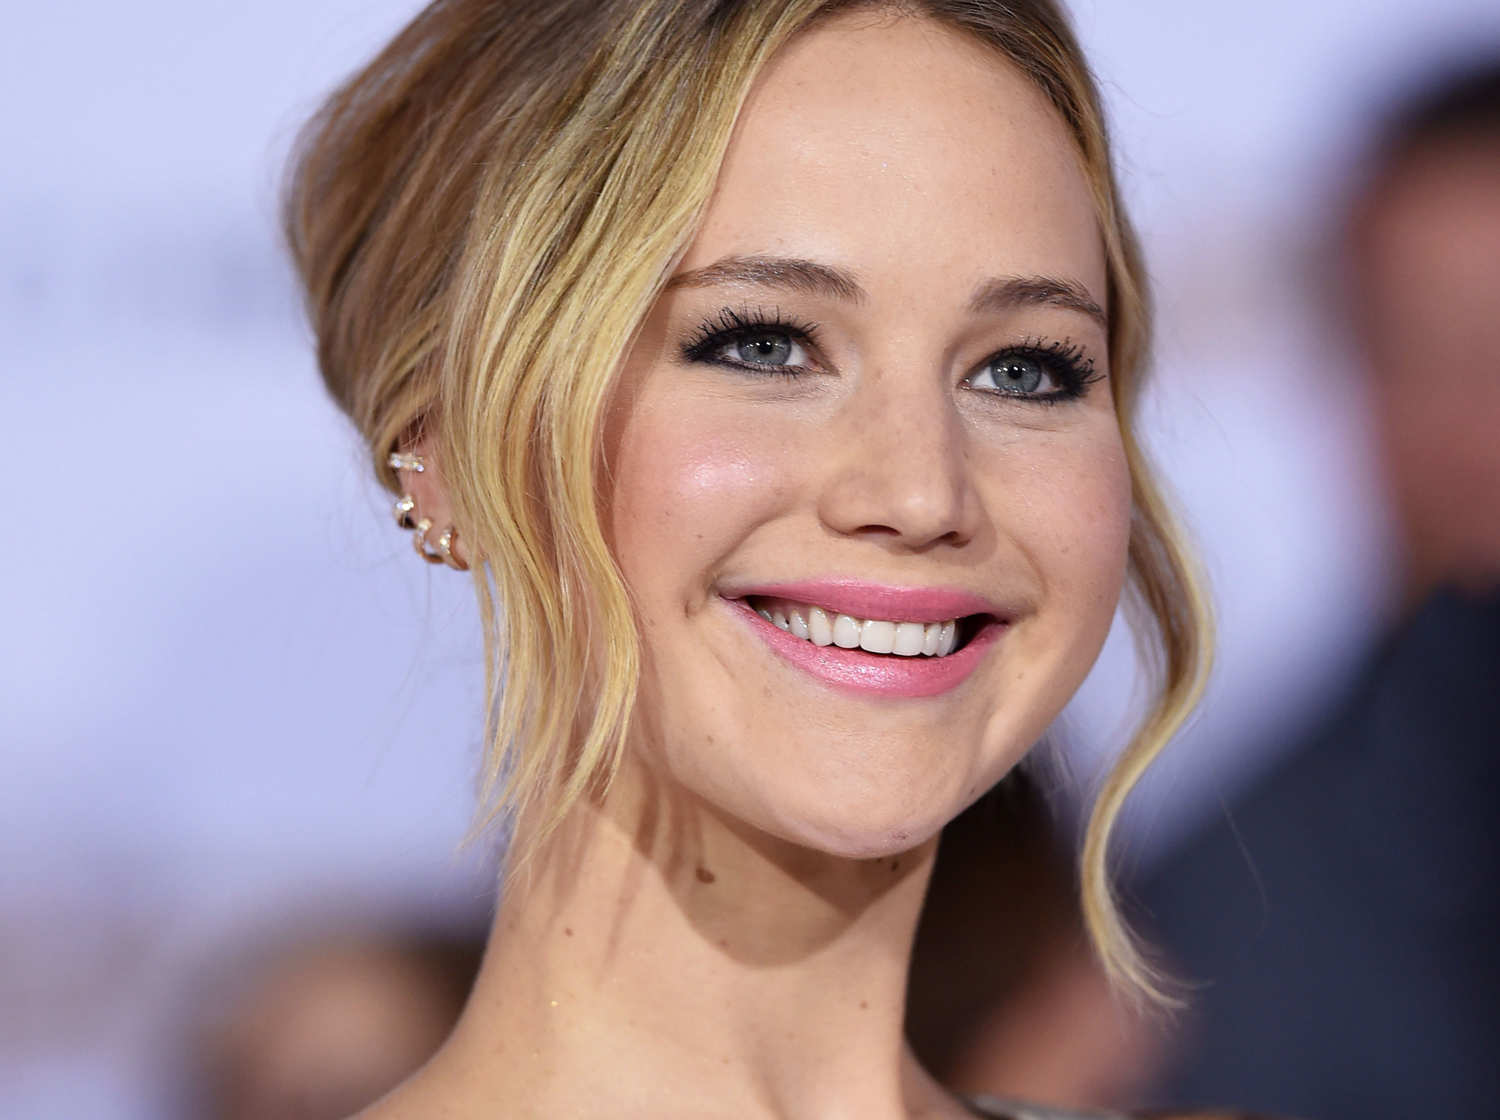 17-jennifer-lawrence-1_w750_h560_2x.jpg